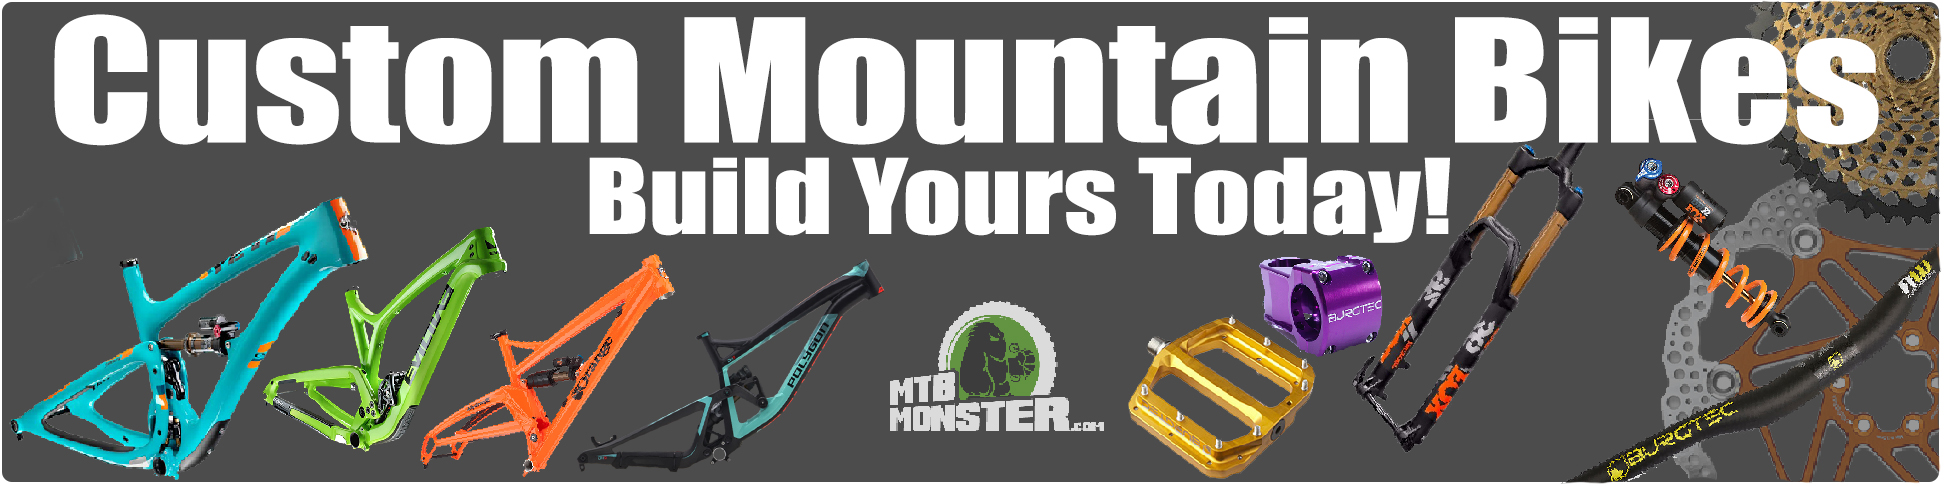 custom-mountain-bikes-build-yours-today-at-mtb-monster-.jpg